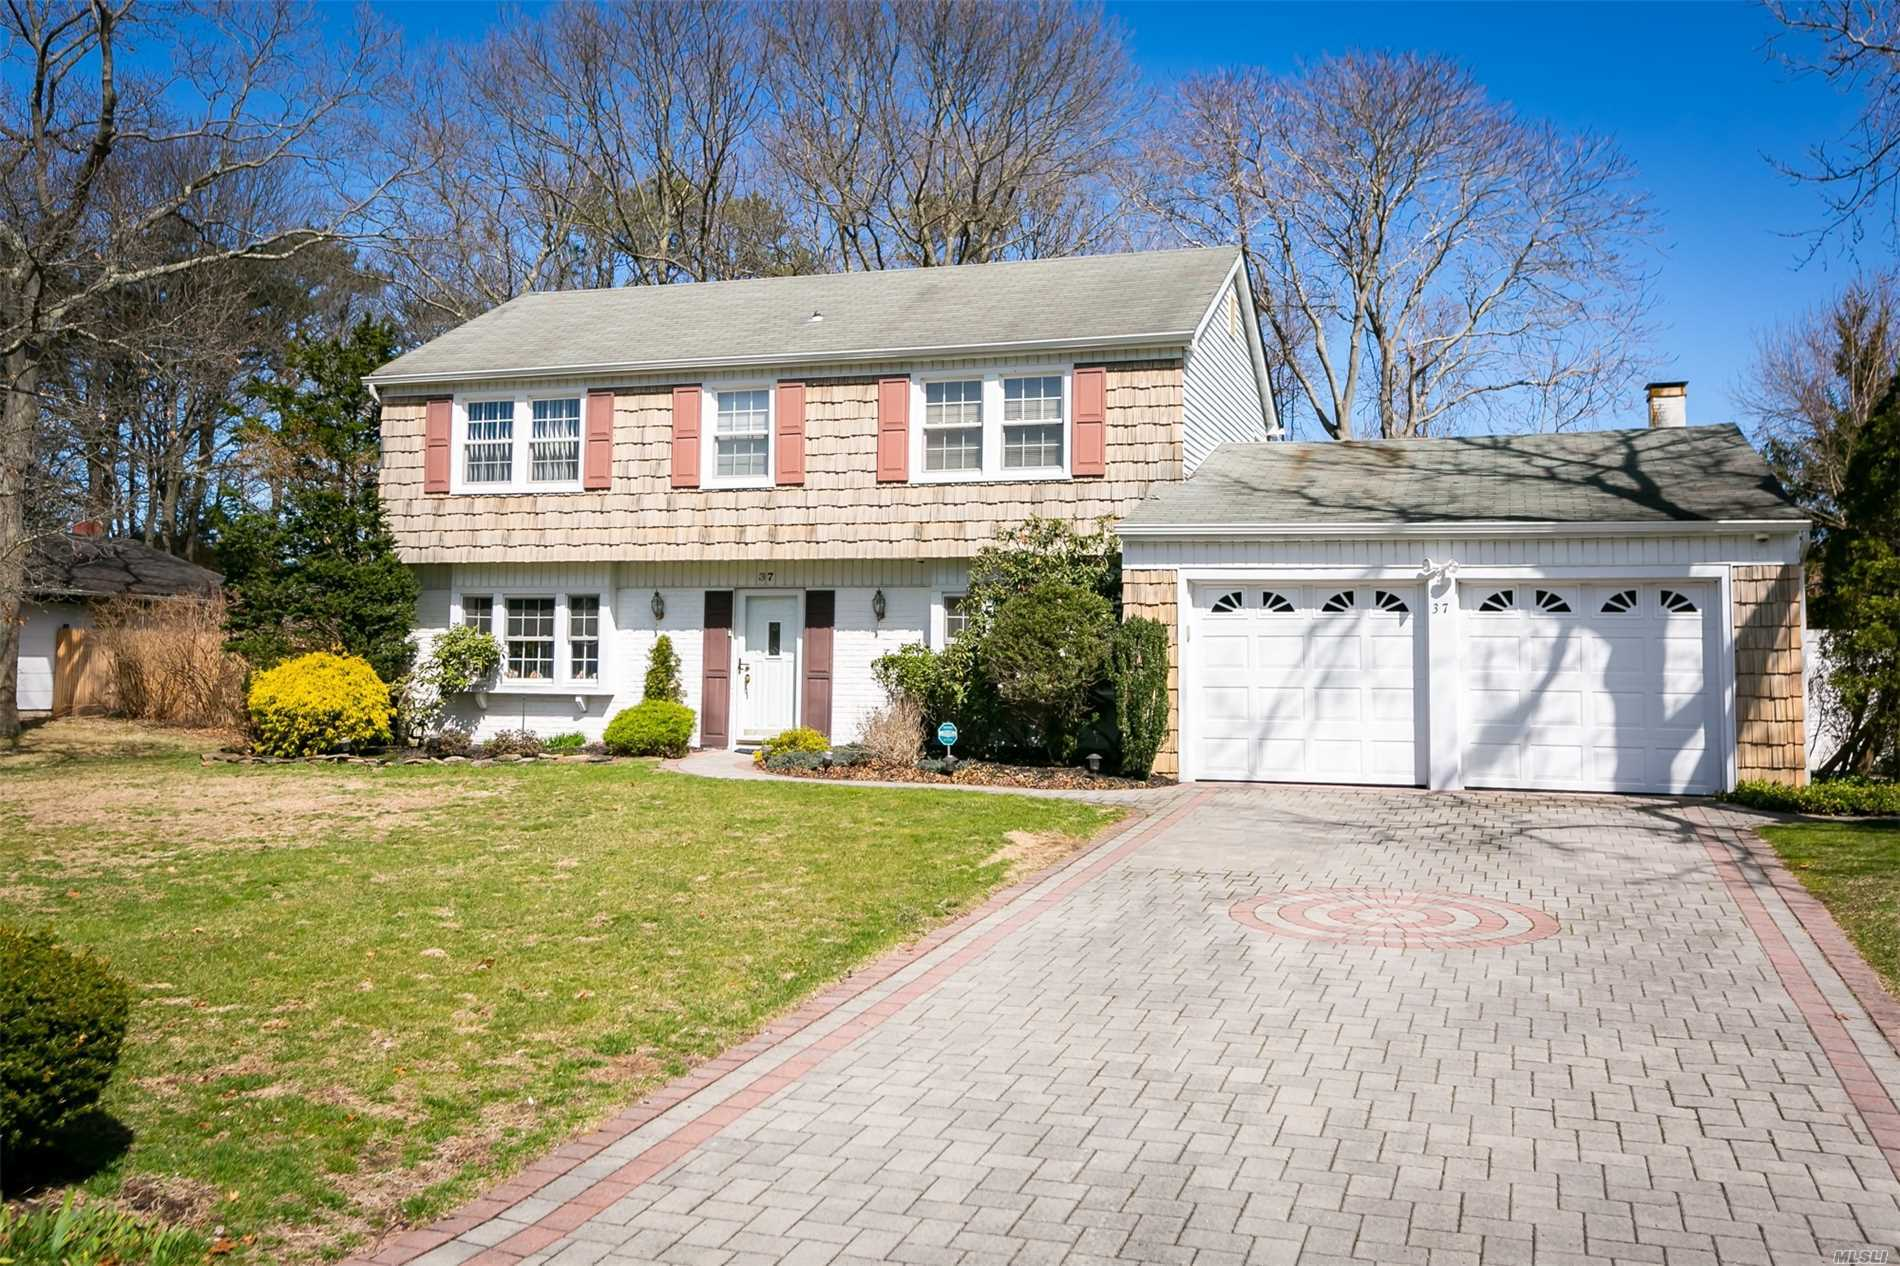 Immaculate 4 BR, 2.5 Bath Colonial Located in Comsewogue School District Featuring Updates Throughout The House, Large Over-Sized Den w/New Gas Fireplace, FDR, Recently Renovated EIK, Impeccably Maintained House w/Too Many Updates To List - Large IGP w/Large Paver Patio - Taxes w/ STAR $ 9319.02